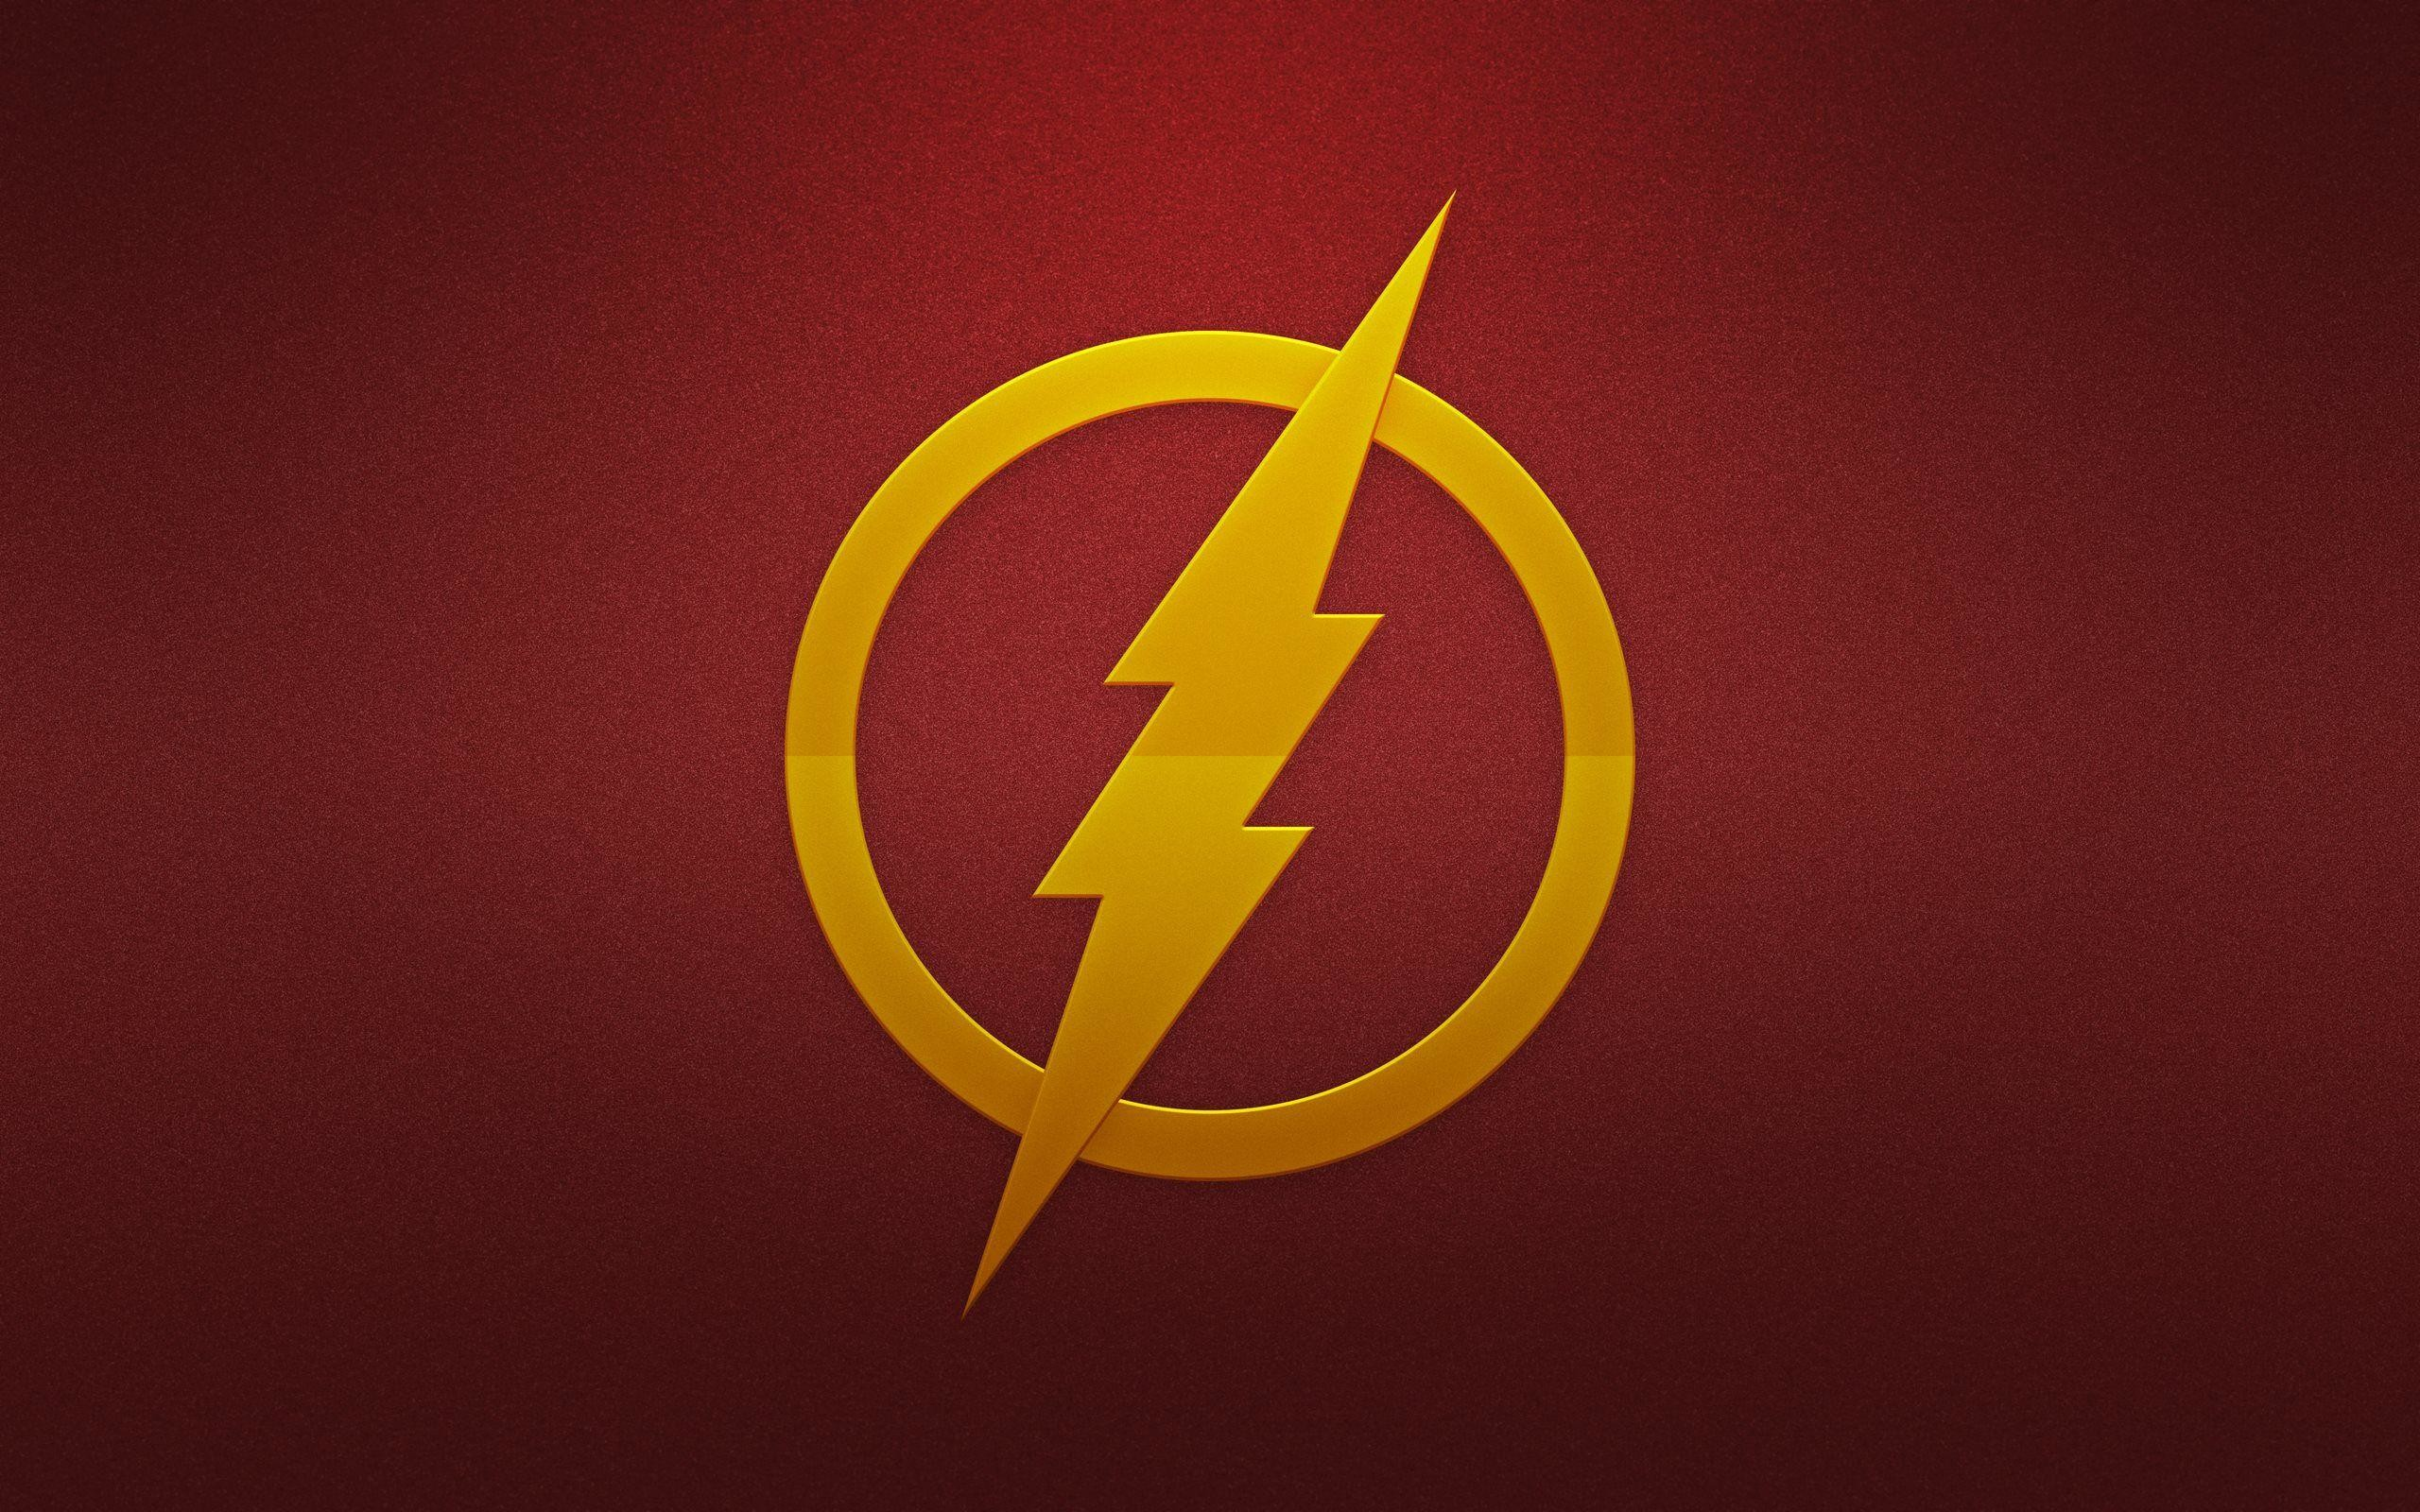 2560x1600 The Flash Wallpapers - Wallpaper Cave